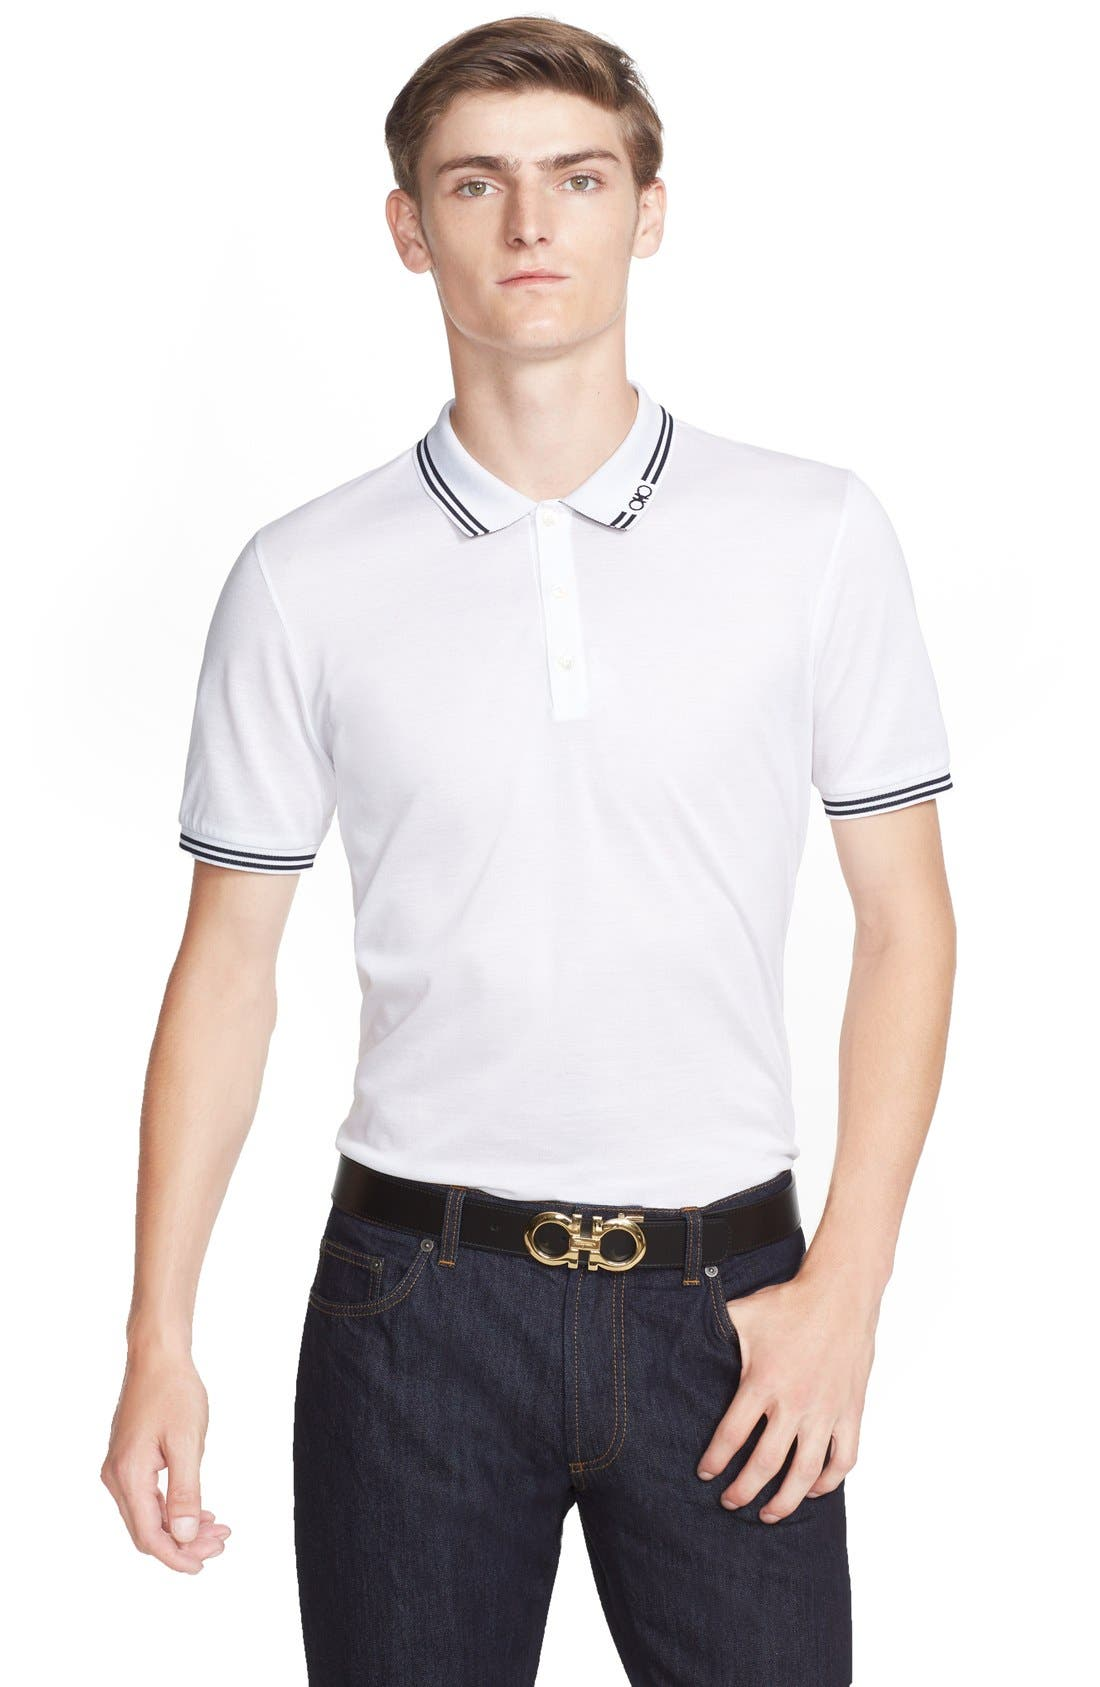 Main Image - Salvatore Ferragamo Piqué Trim Fit Polo